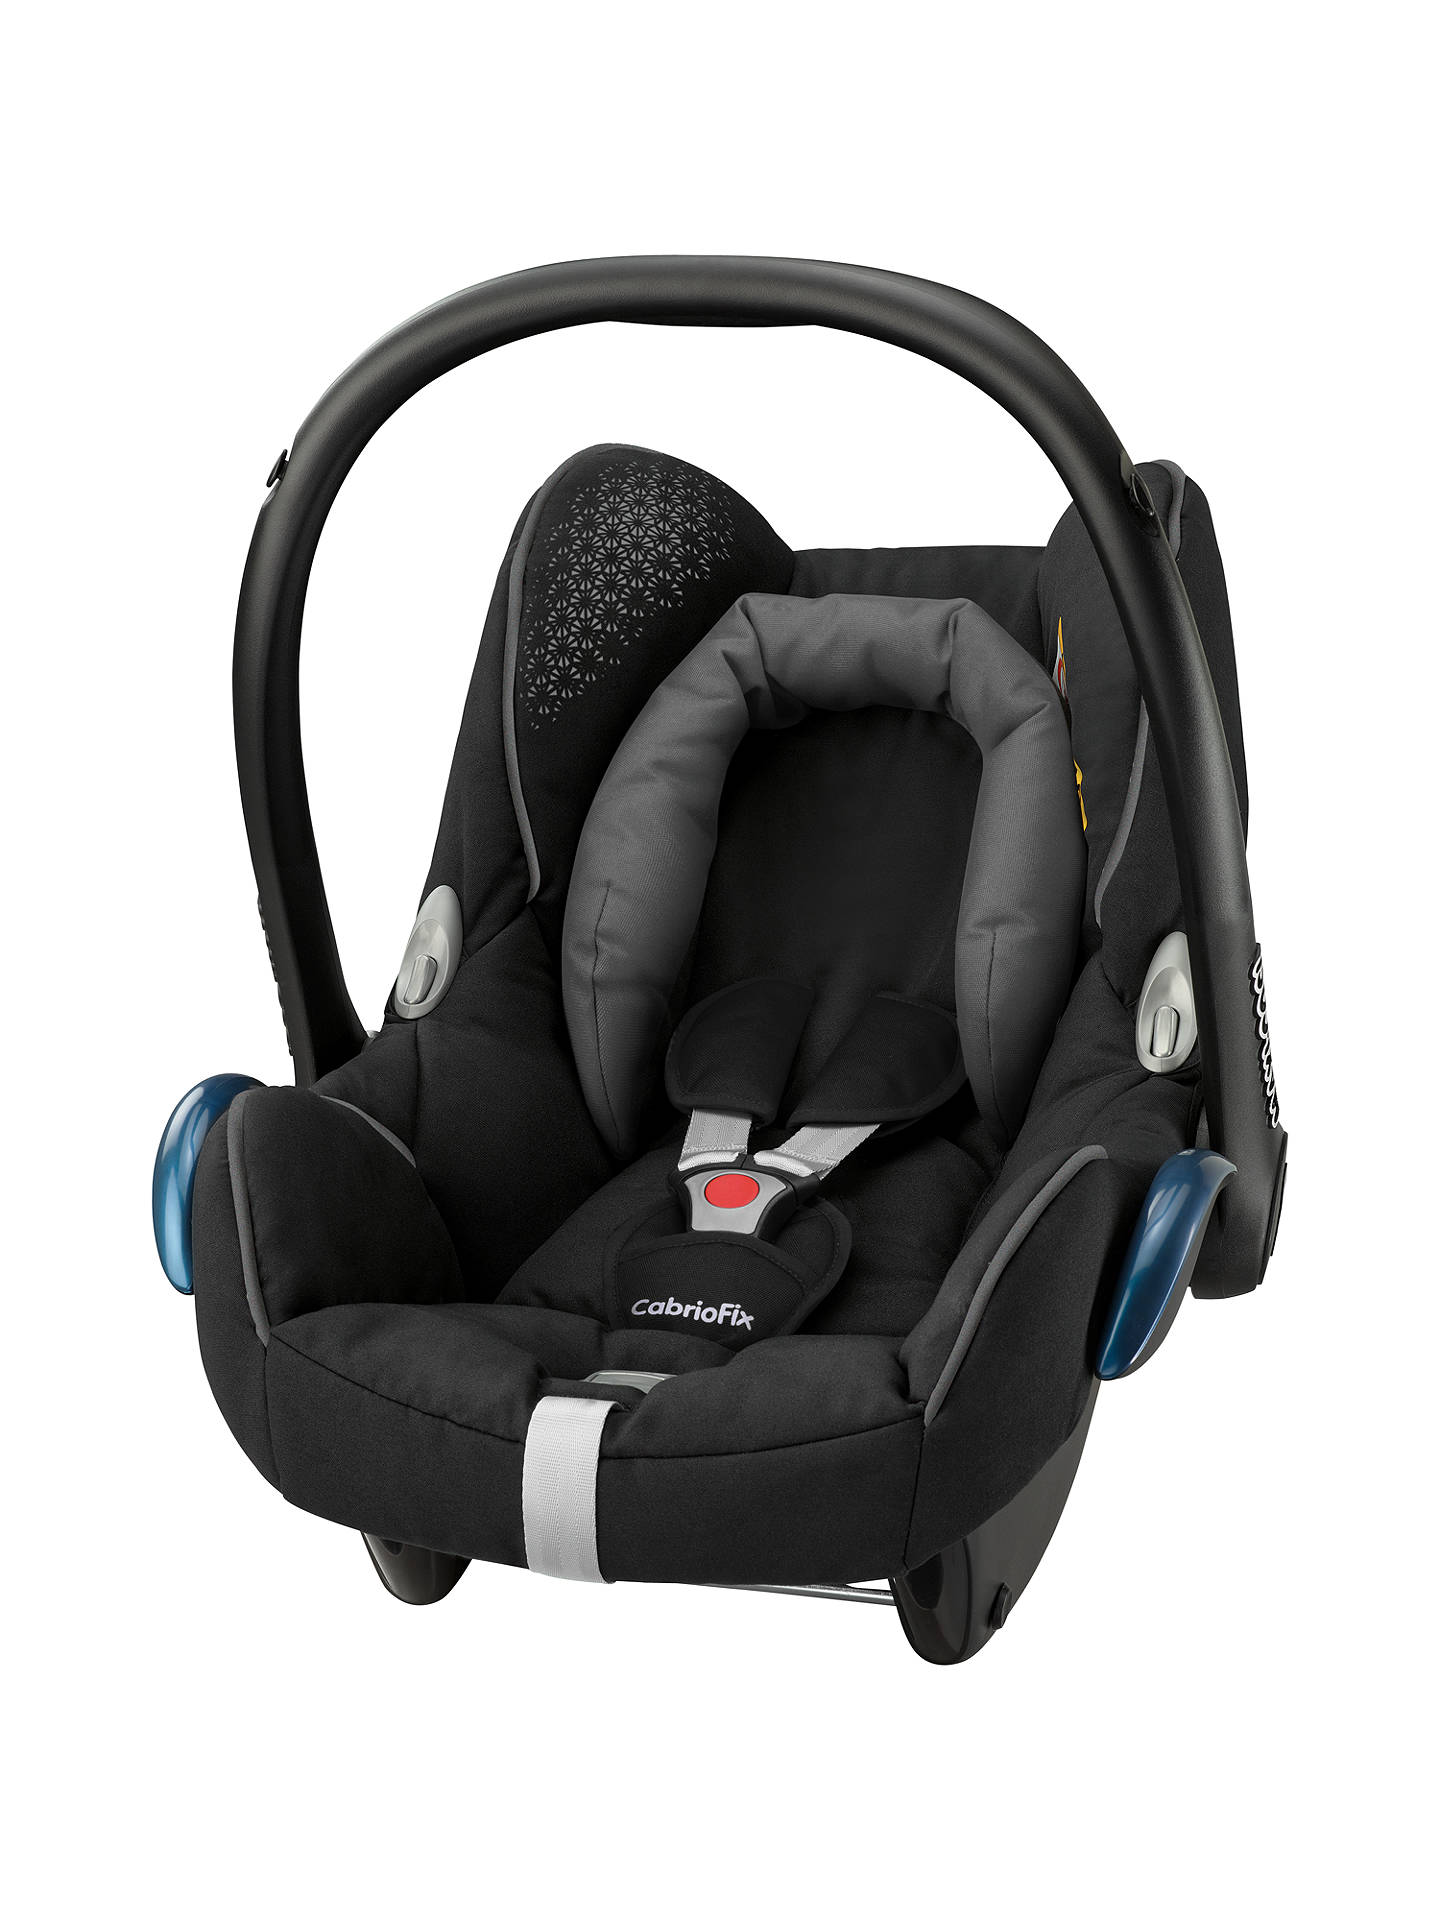 maxi cosi cabriofix group 0 baby car seat origami black. Black Bedroom Furniture Sets. Home Design Ideas